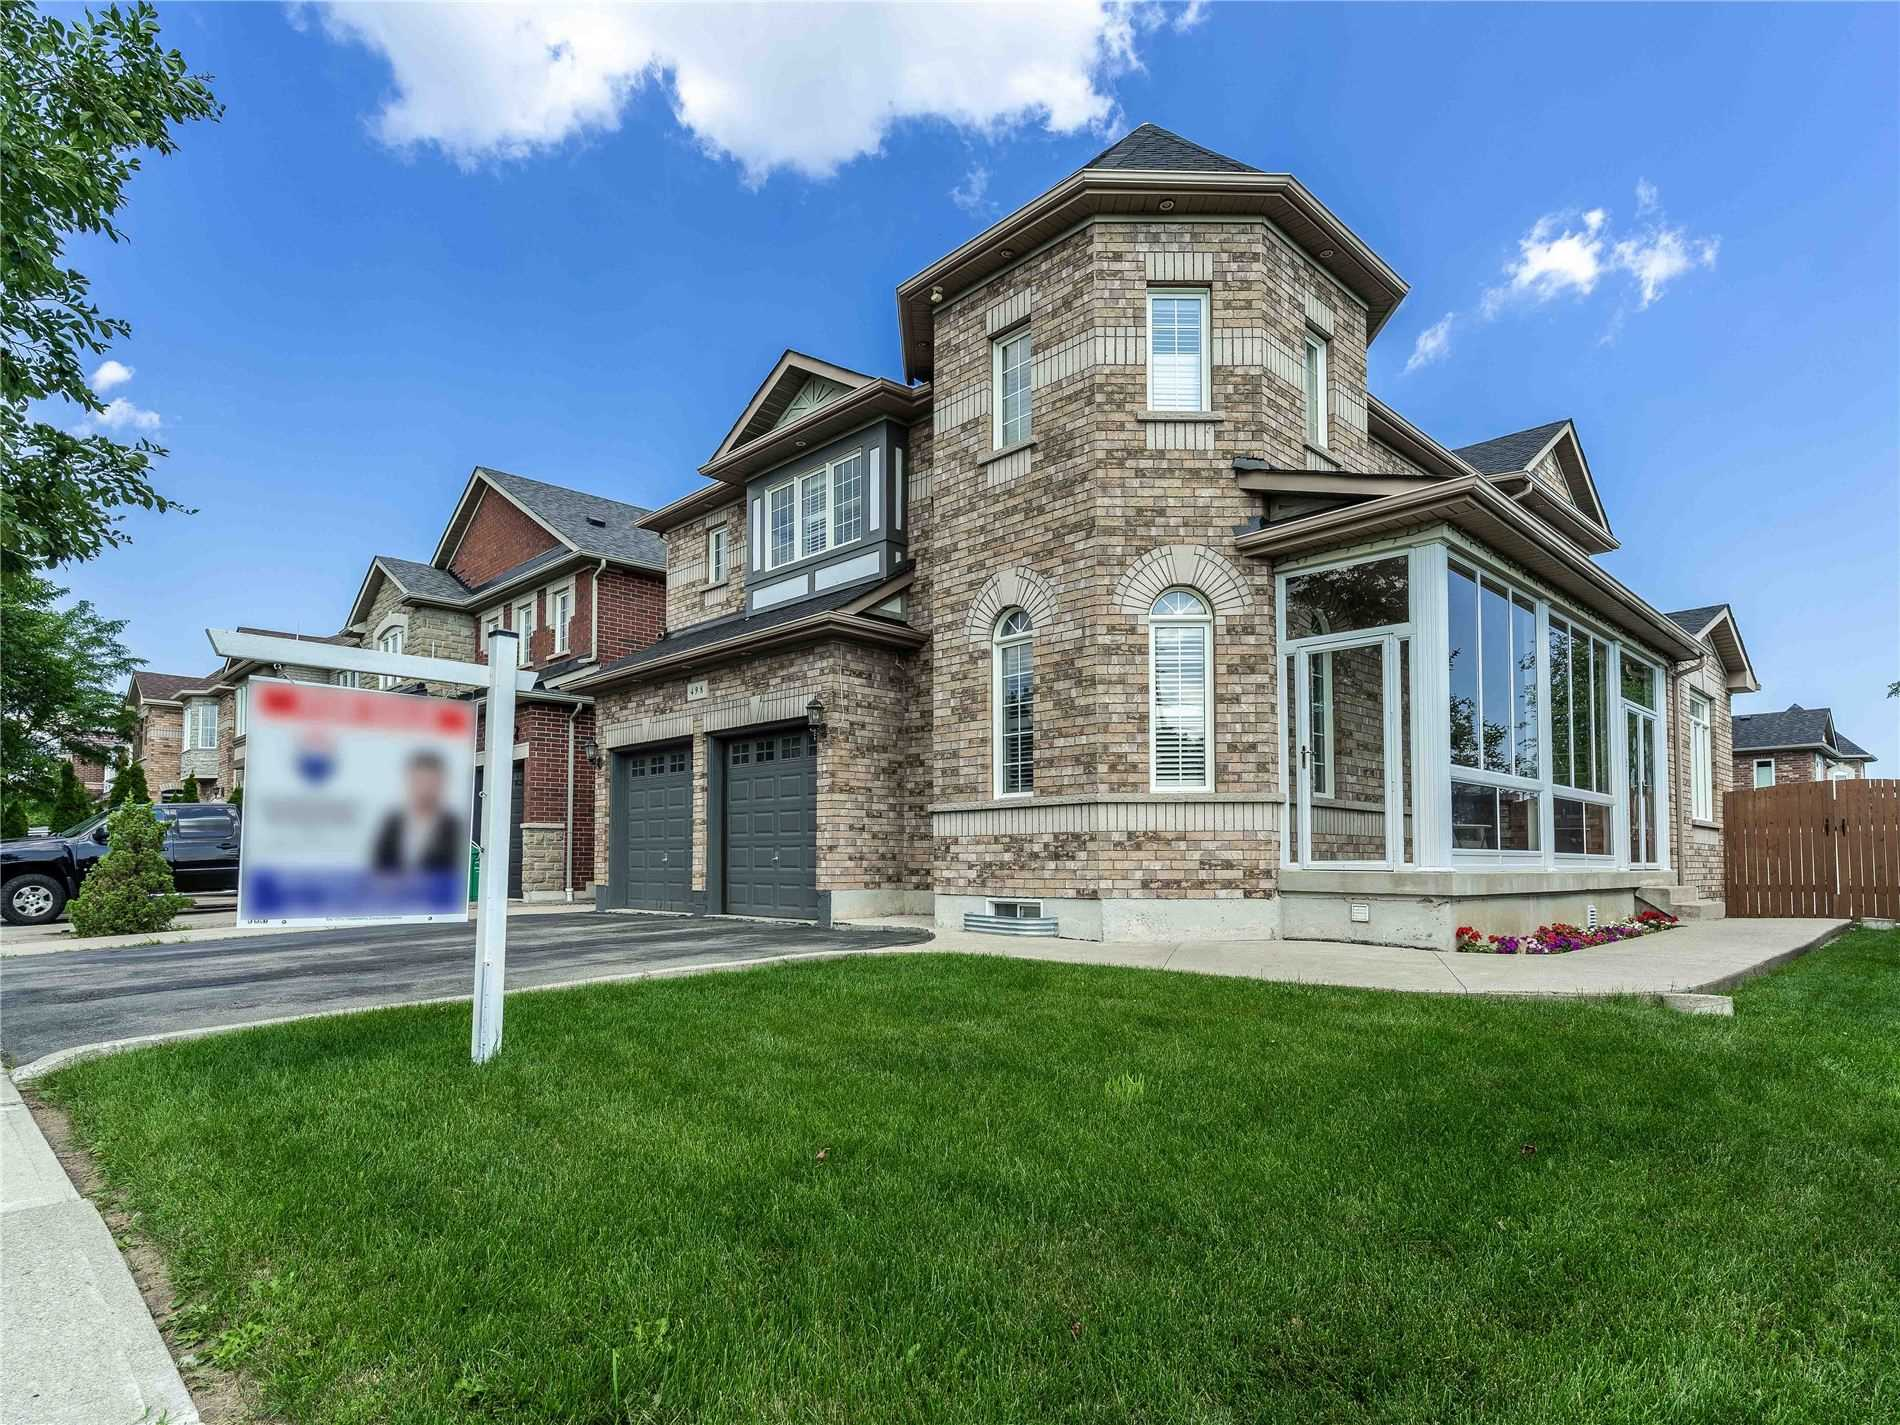 Detached house For Sale In Mississauga - 498 Tremblant Crt, Mississauga, Ontario, Canada L5W1P4 , 4 Bedrooms Bedrooms, ,5 BathroomsBathrooms,Detached,For Sale,Tremblant